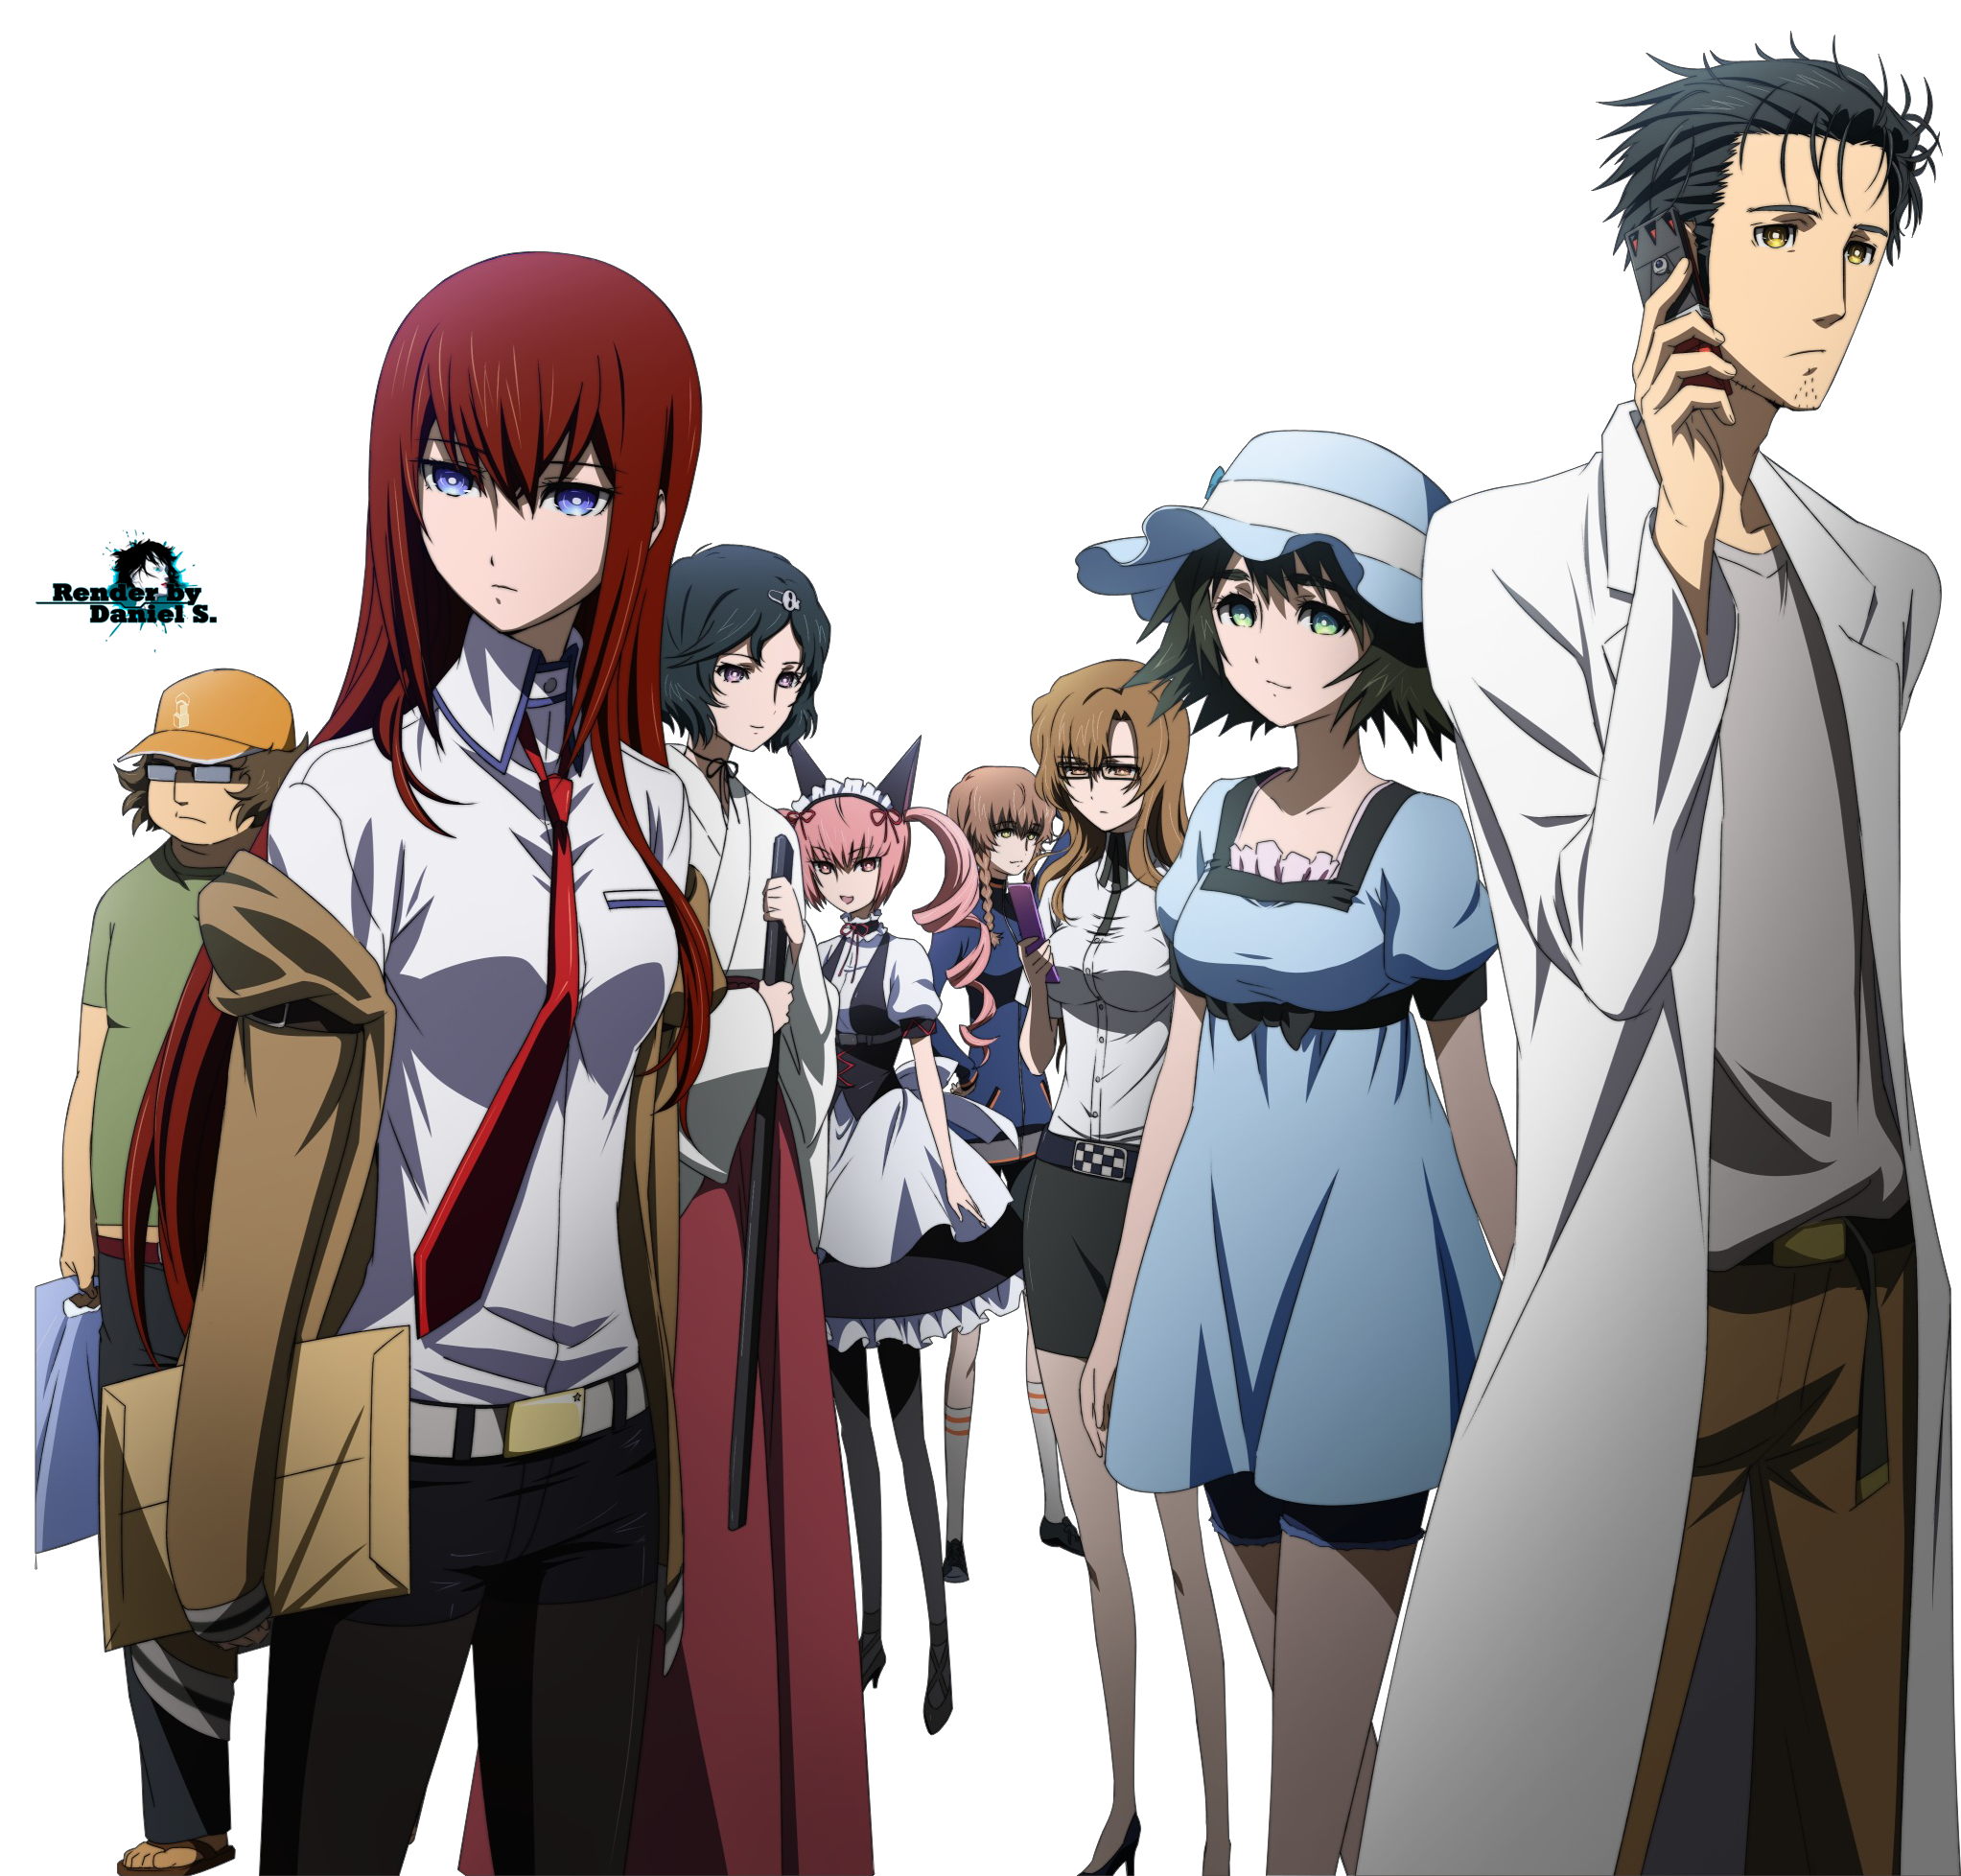 Steins; Gate. I feel bad having just finished this as it